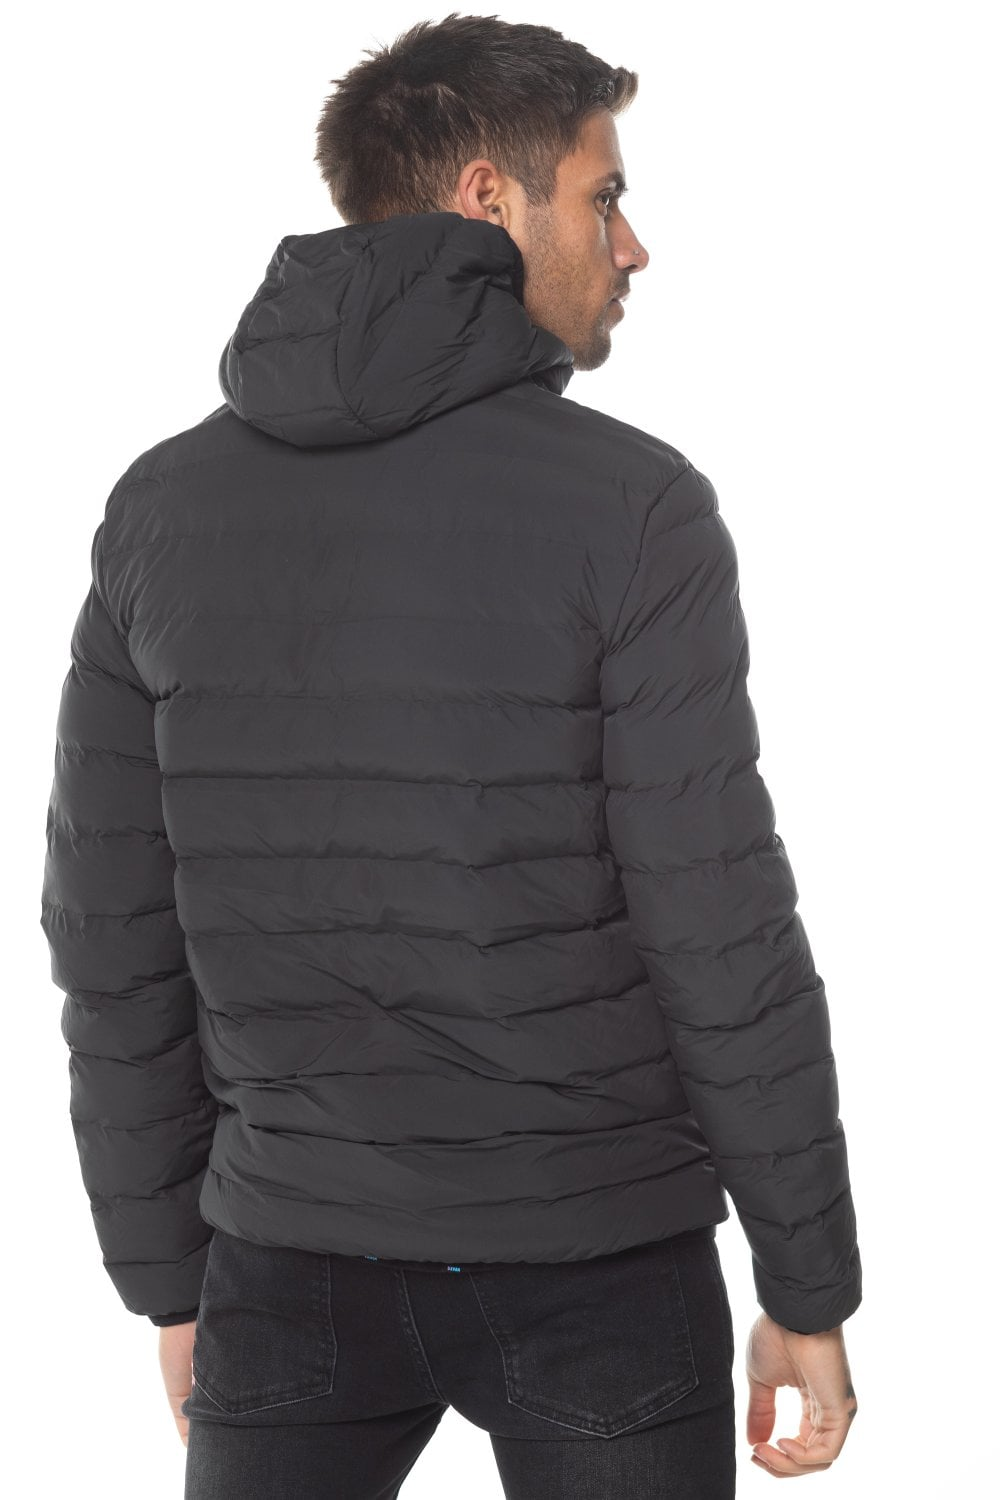 11 Degrees Space Puffer Jacket - Black